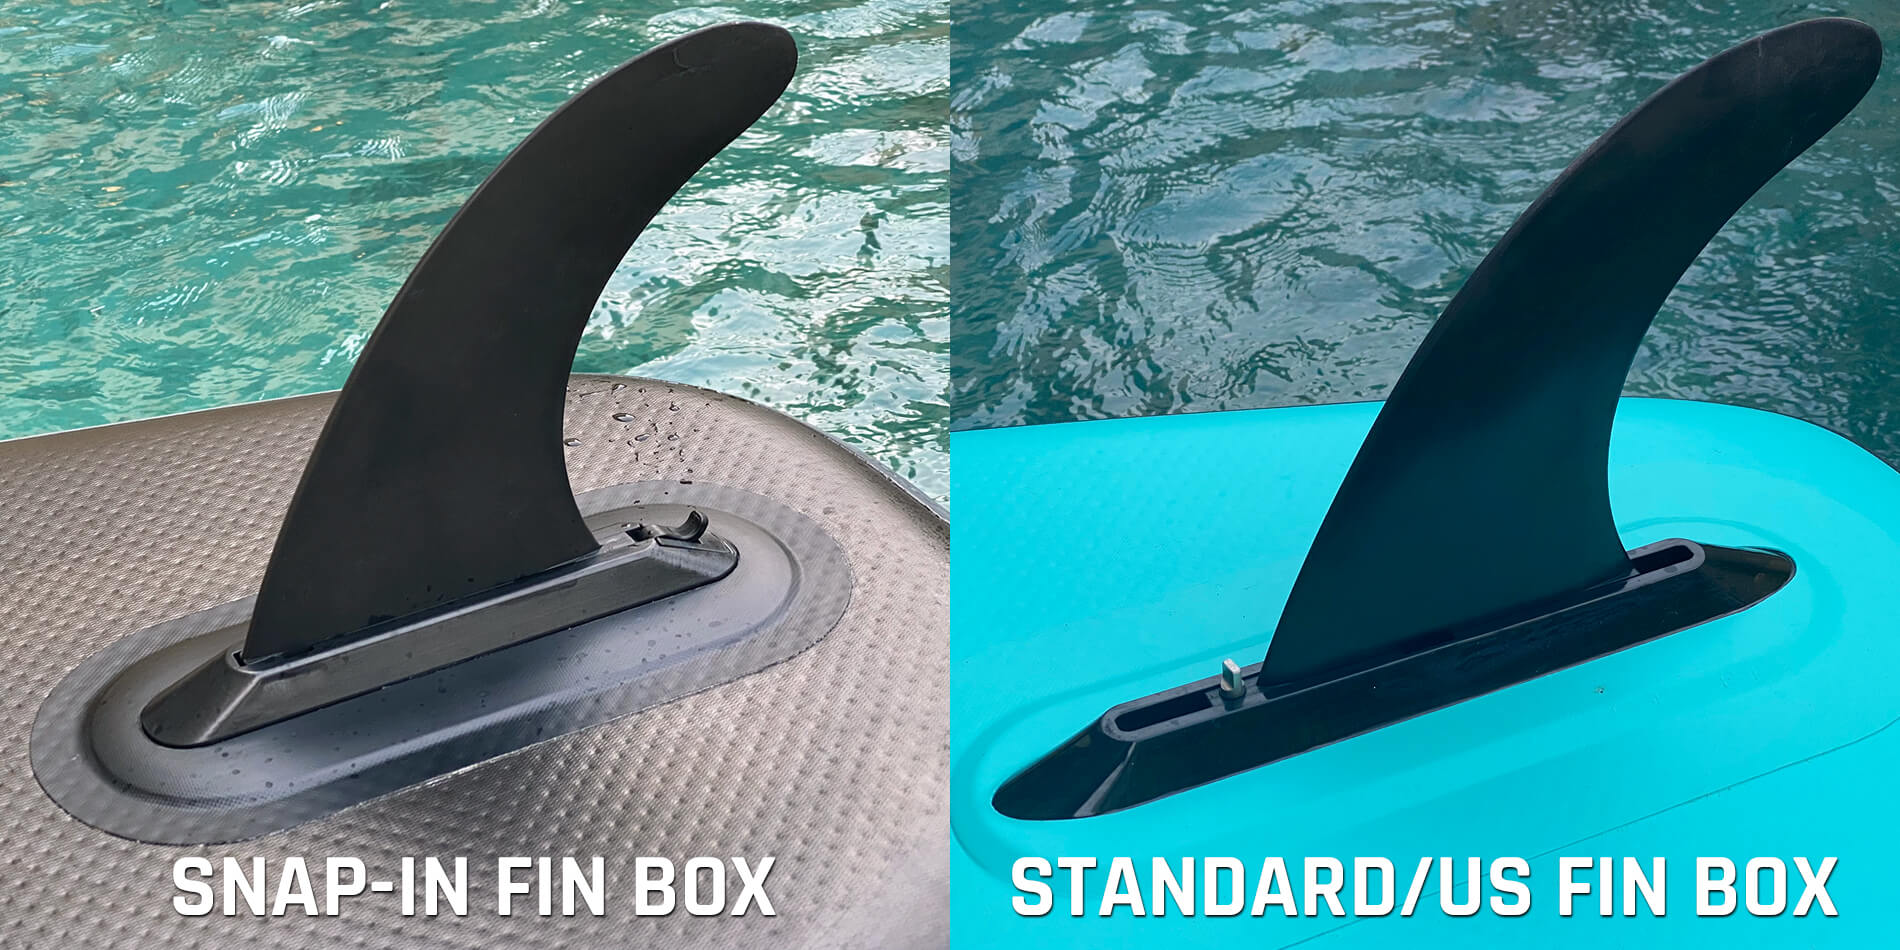 Snap in Fin box vs Standard US Fin box